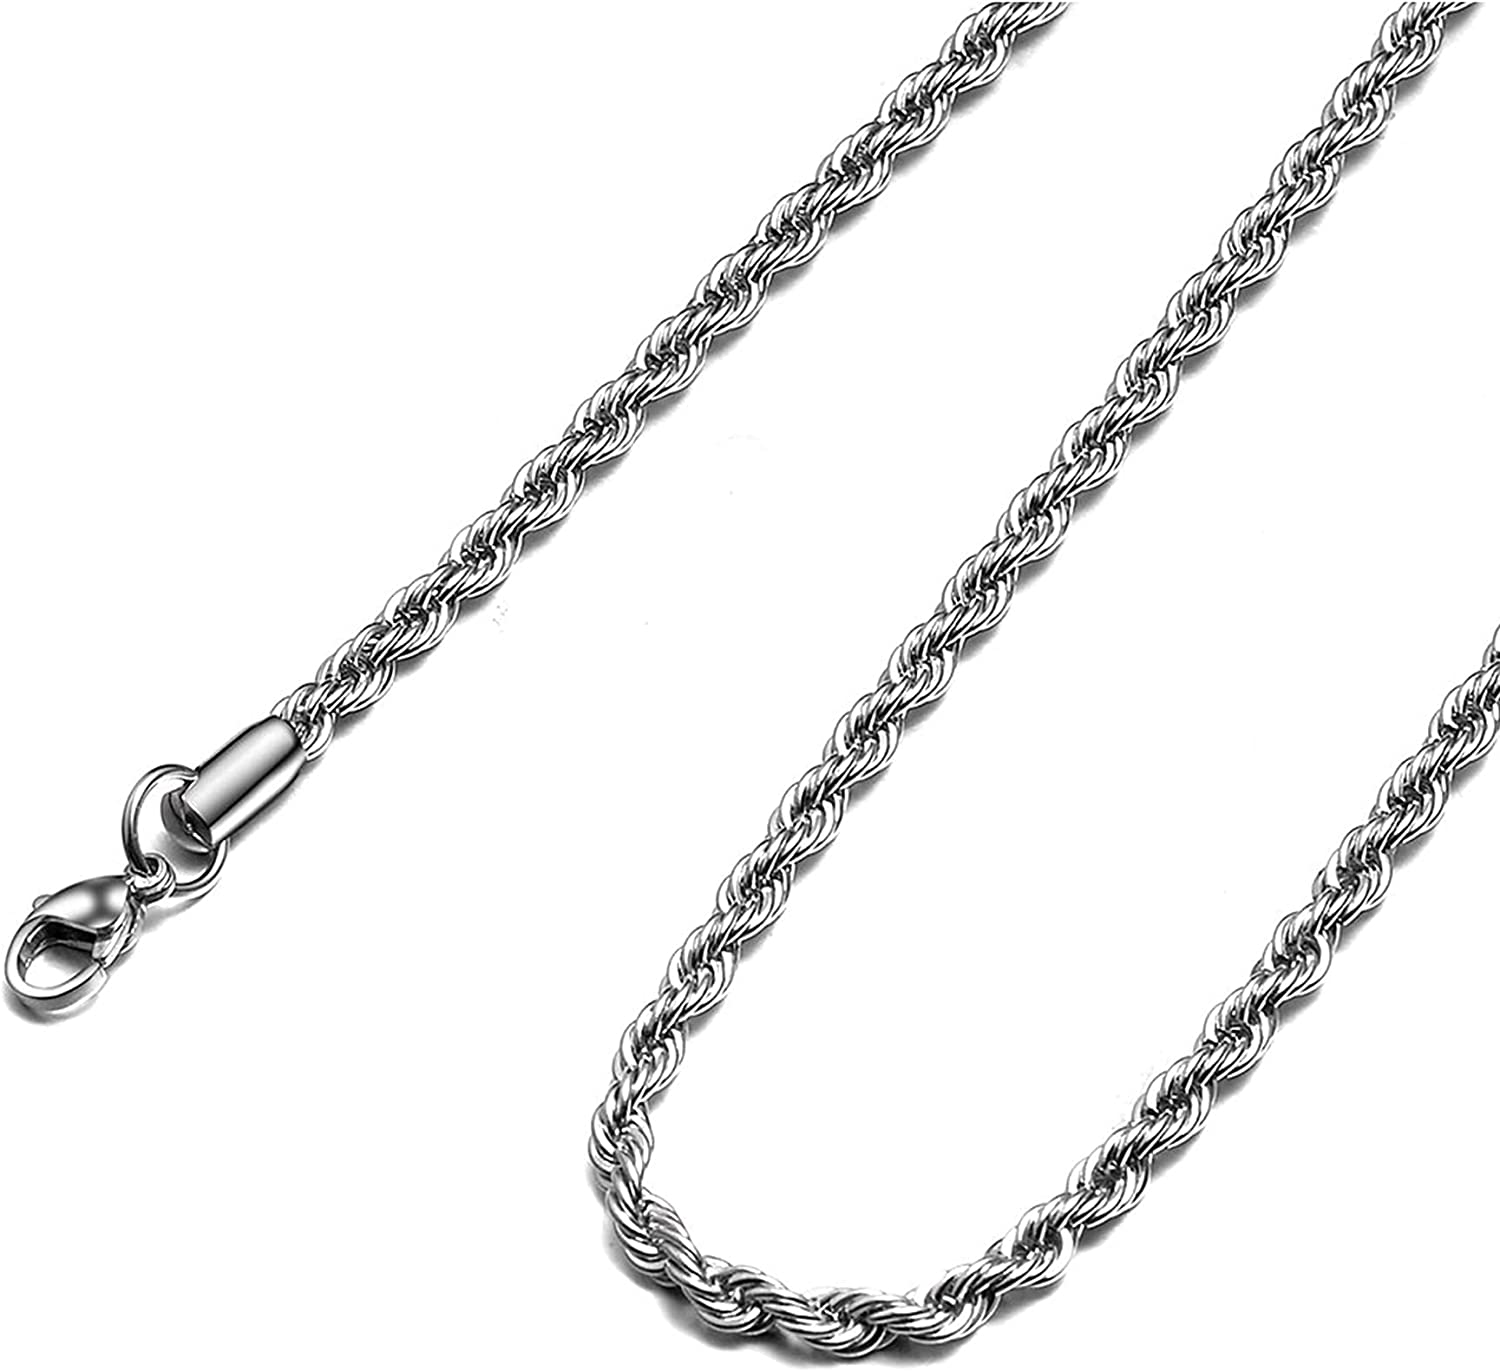 Rope Chain Necklace 2.5mm Bombing new Popular products work Steel 8mm Men Stainless